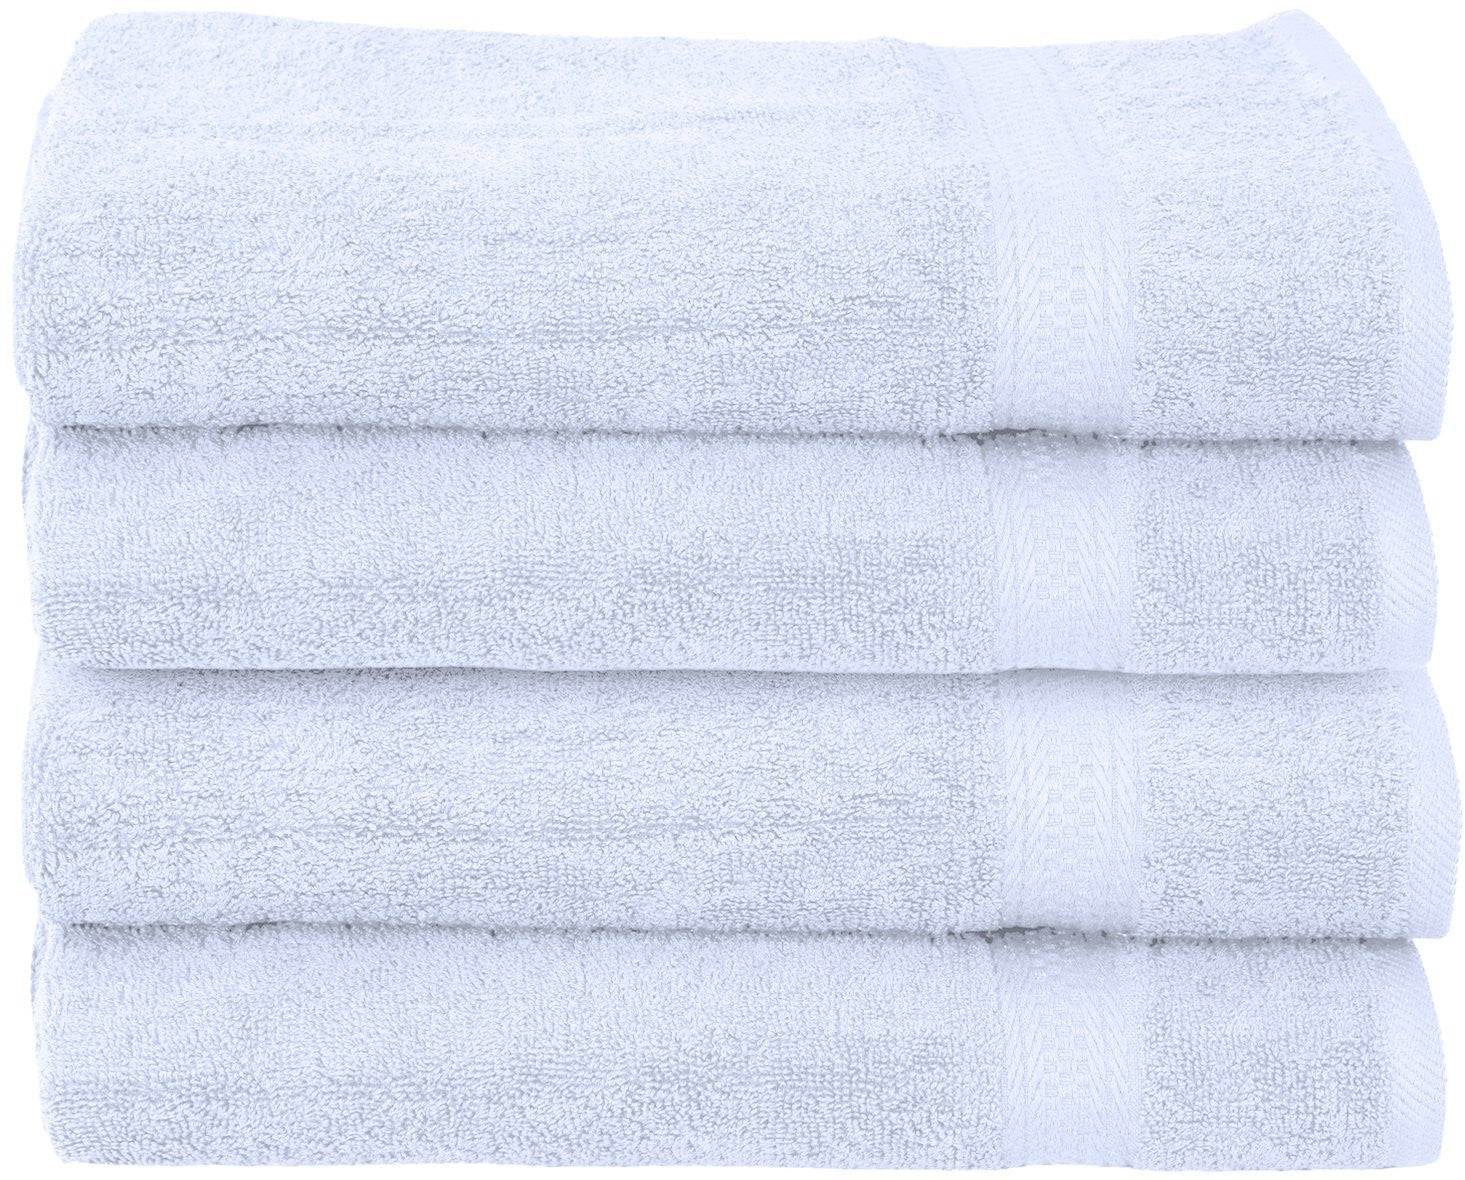 Ringspun Cotton Hand Towels - 16 by 28-Inch, White, Pack of 4